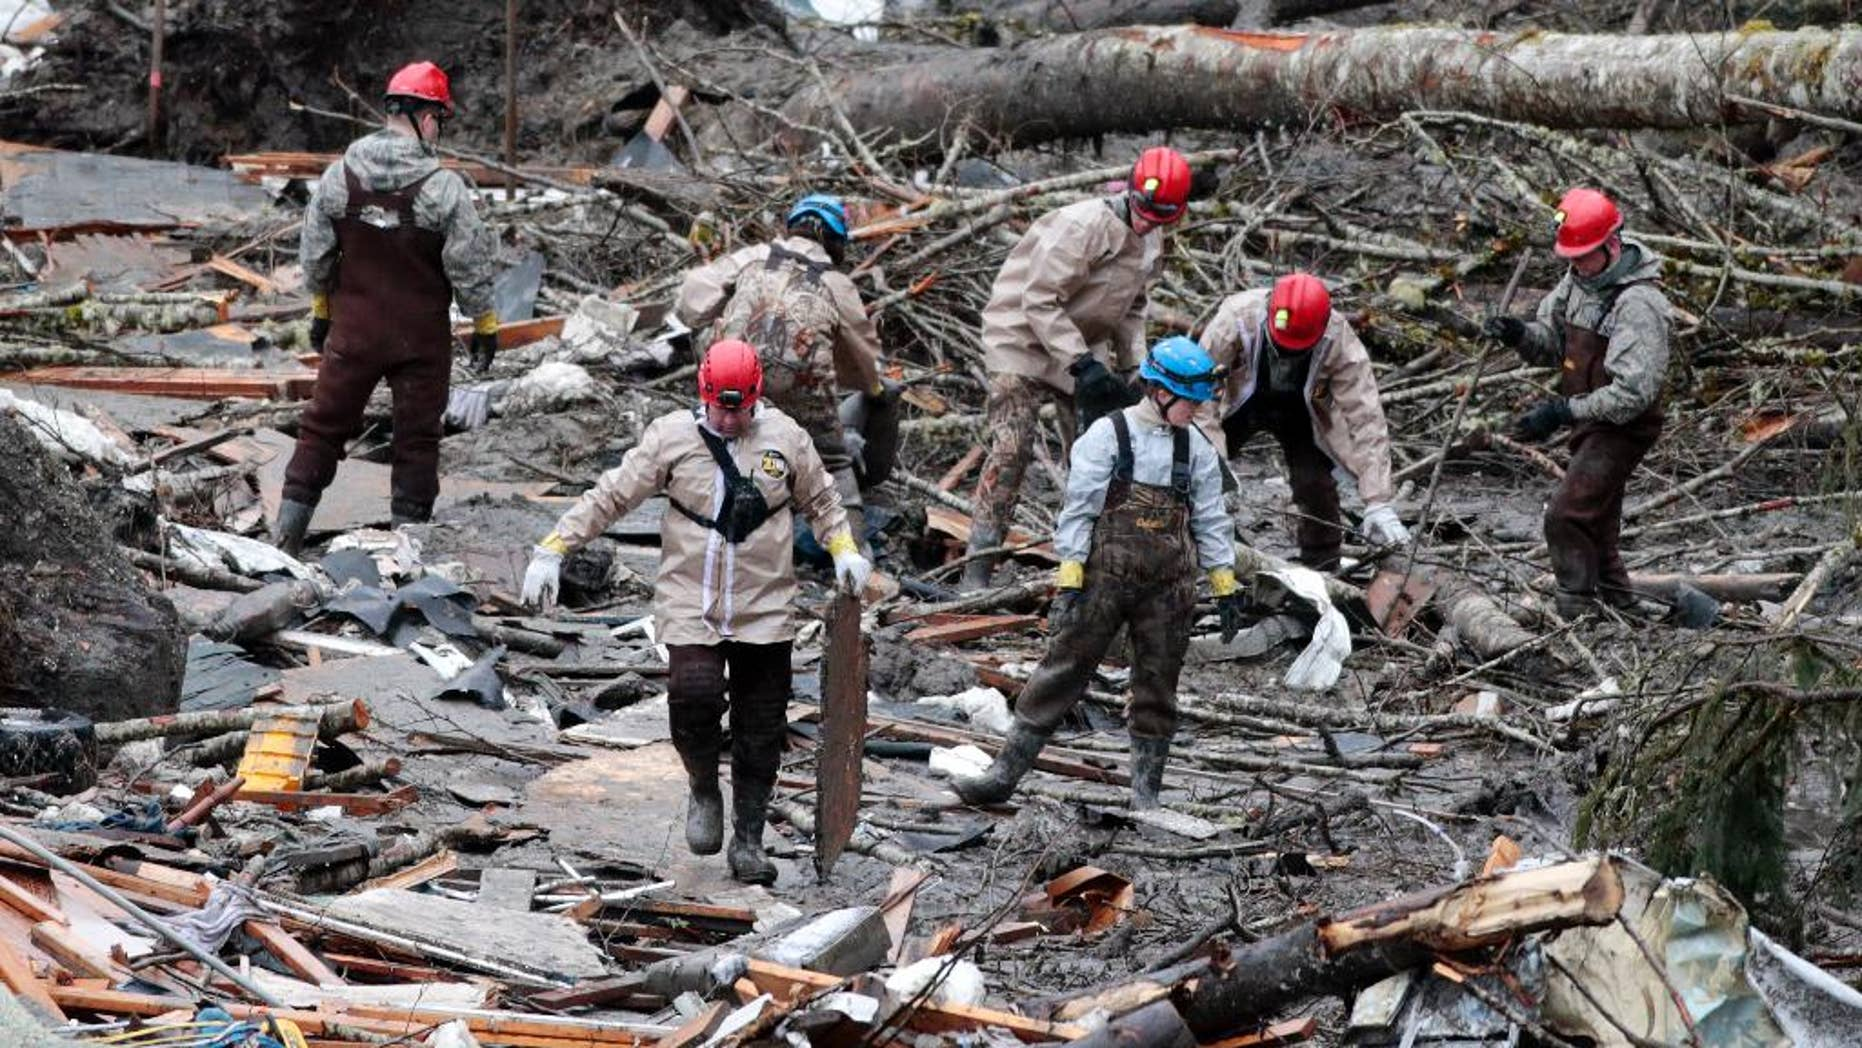 Workers comb through debris at the site of a deadly mudslide, Friday, March 28, 2014, in Oso, Wash. Besides the 26 bodies already found, dozens more people could be buried in the debris pile left from the mudslide nearly one week ago. (AP Photo/Lindsey Wasson, Pool)